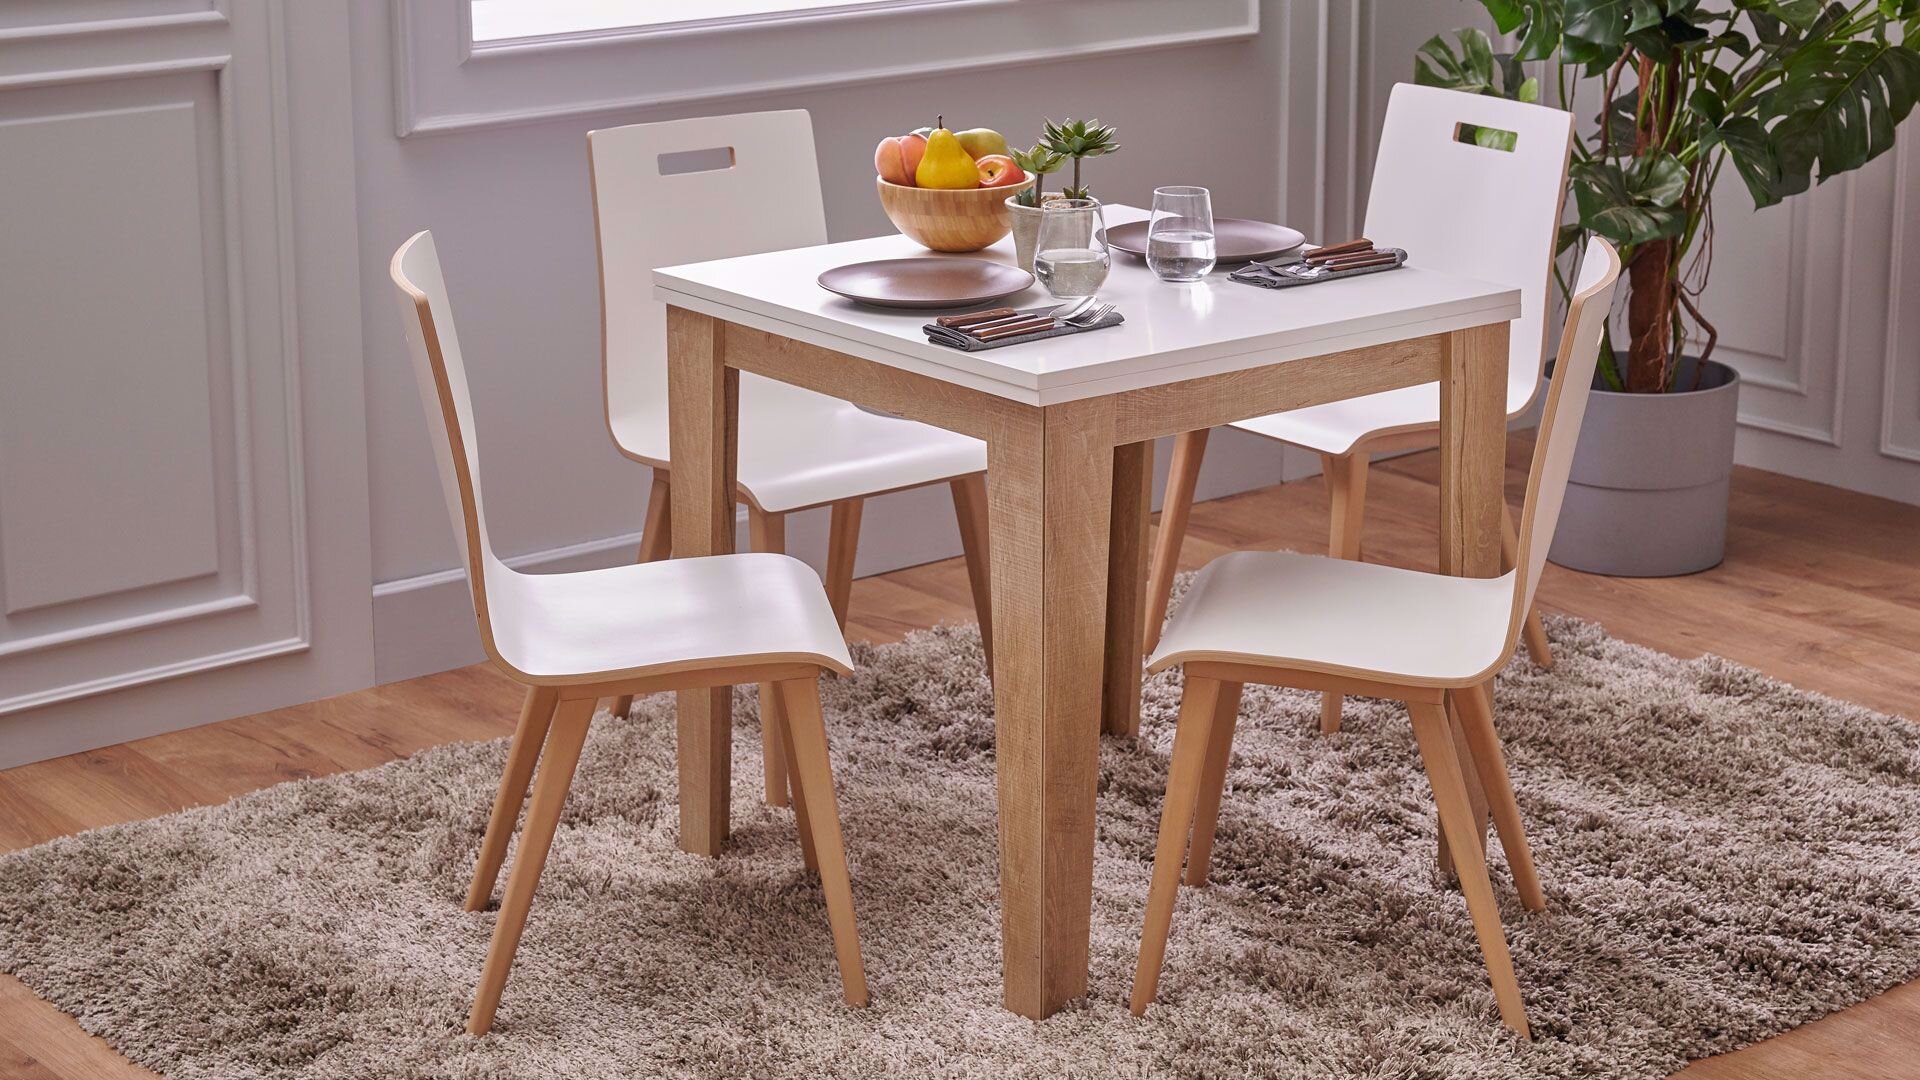 Redoro Kitchen Table And Chairs